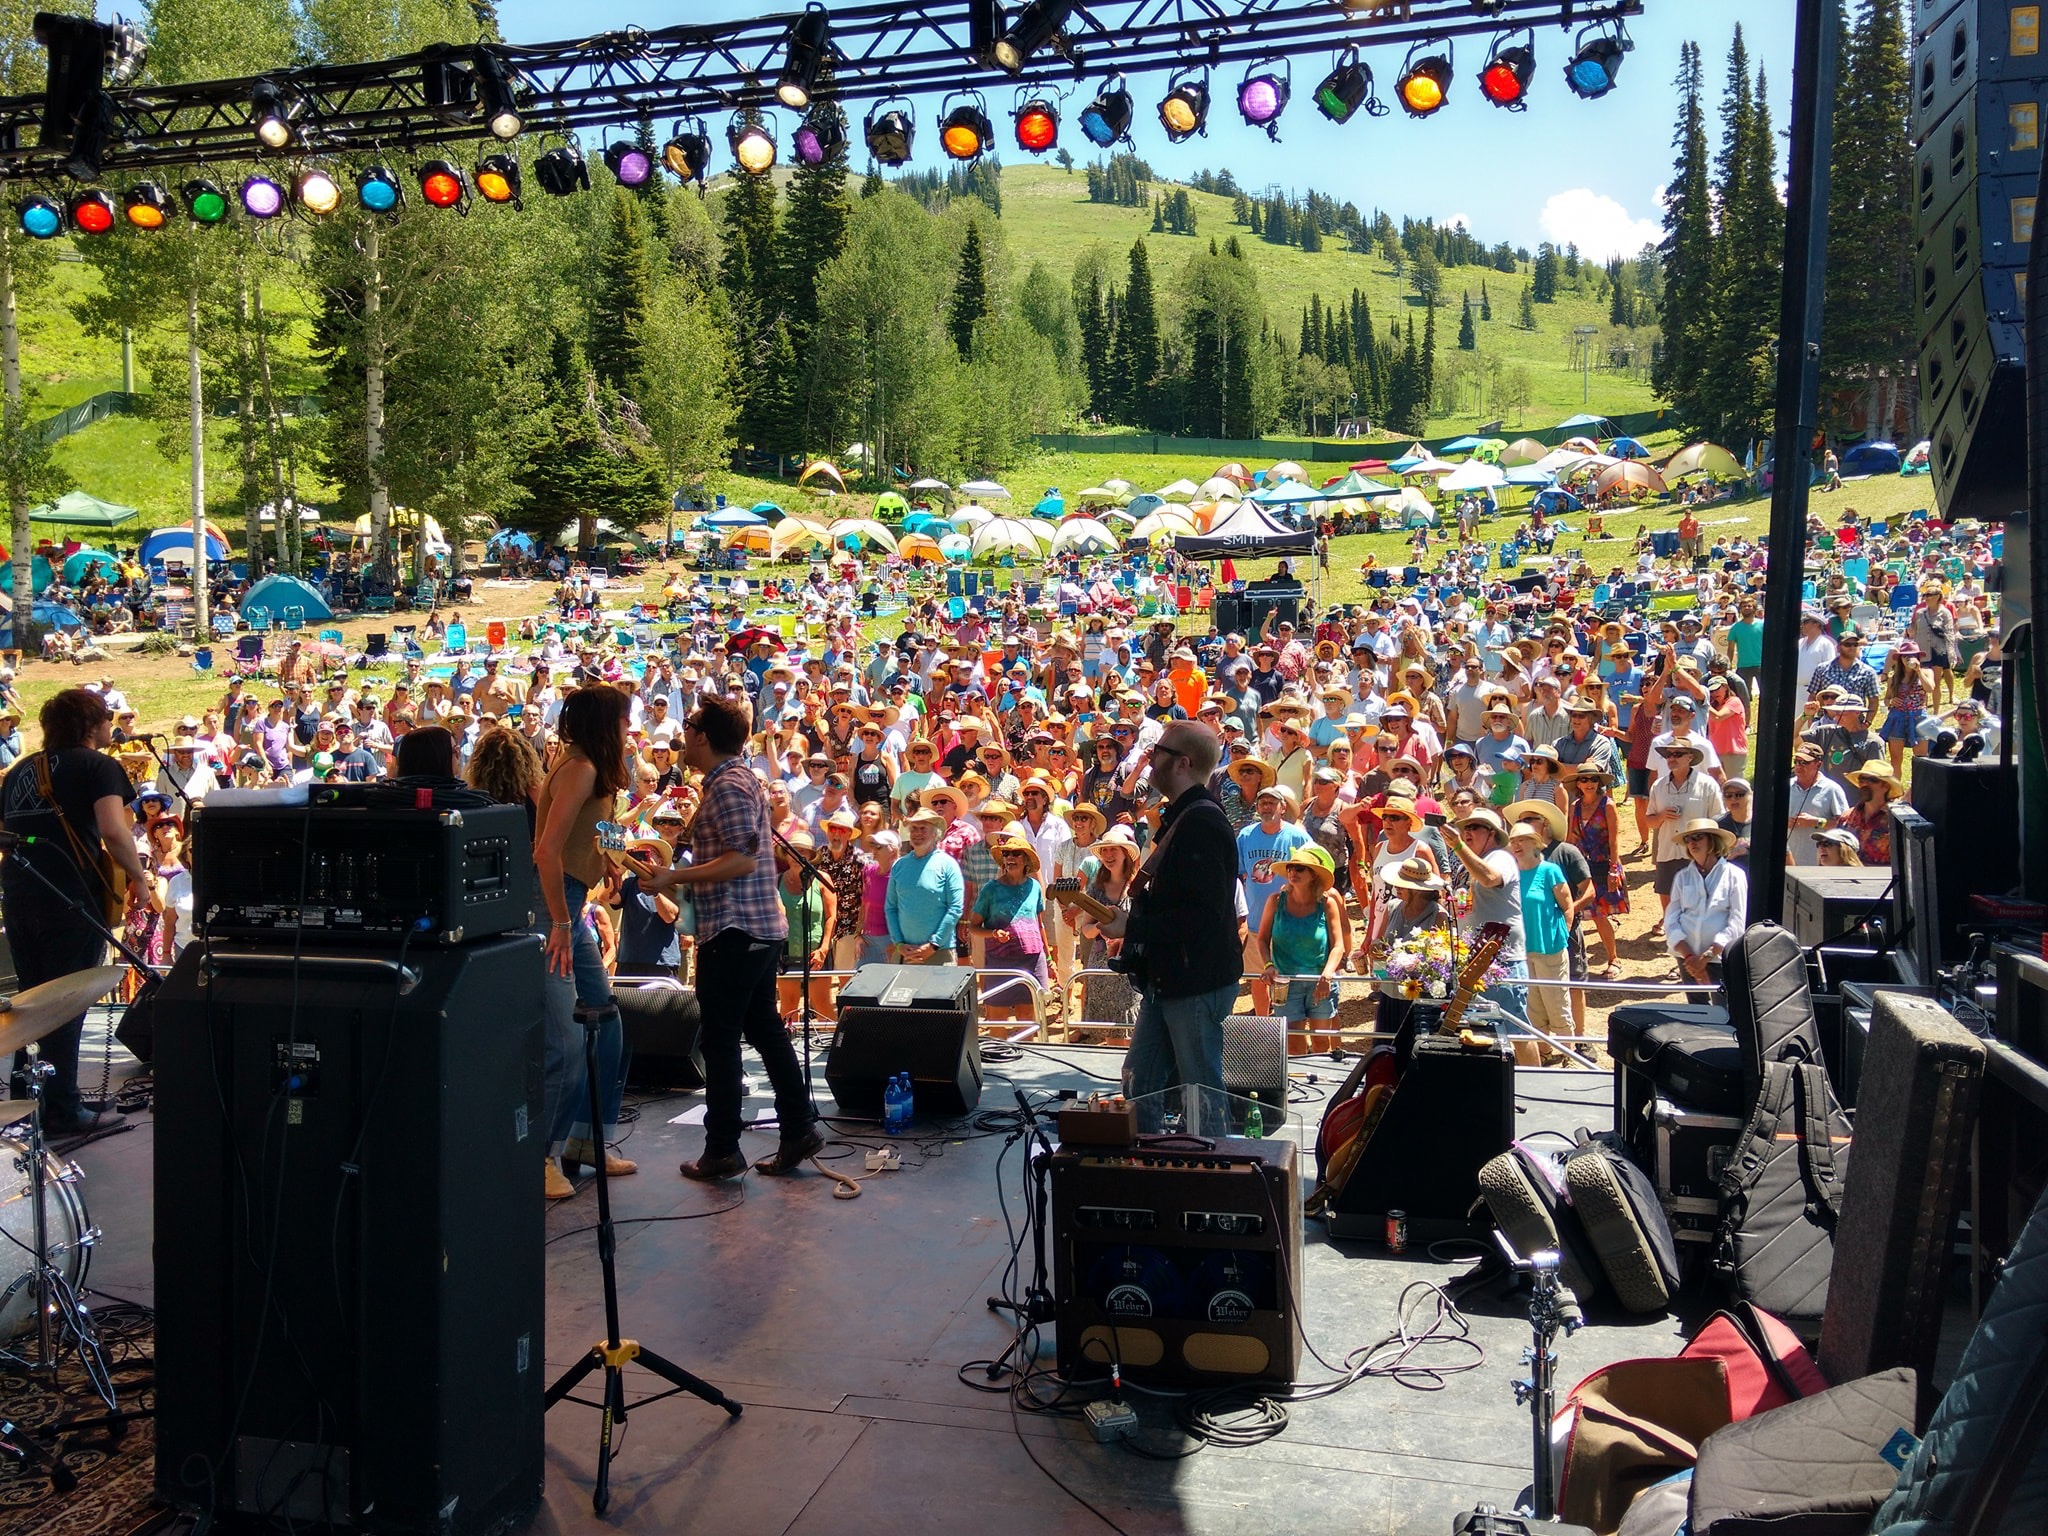 Plying the Targhee Festival in Wyoming